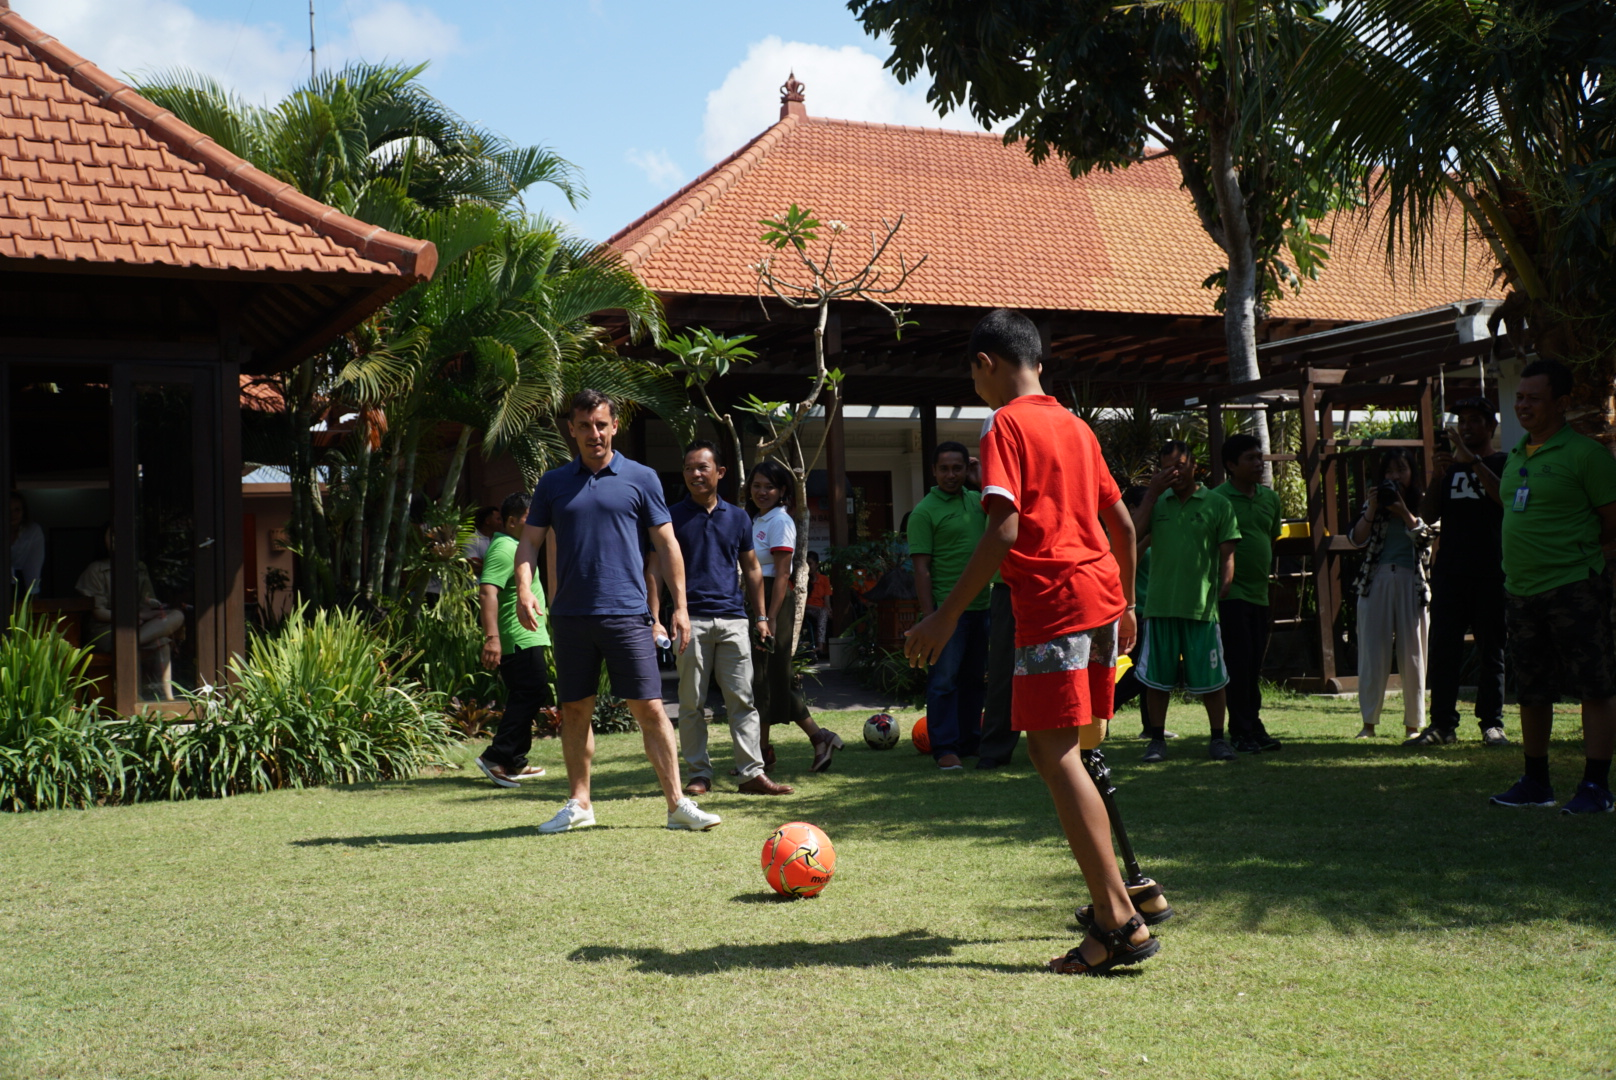 Gary Neville playing football with a prosthesis user